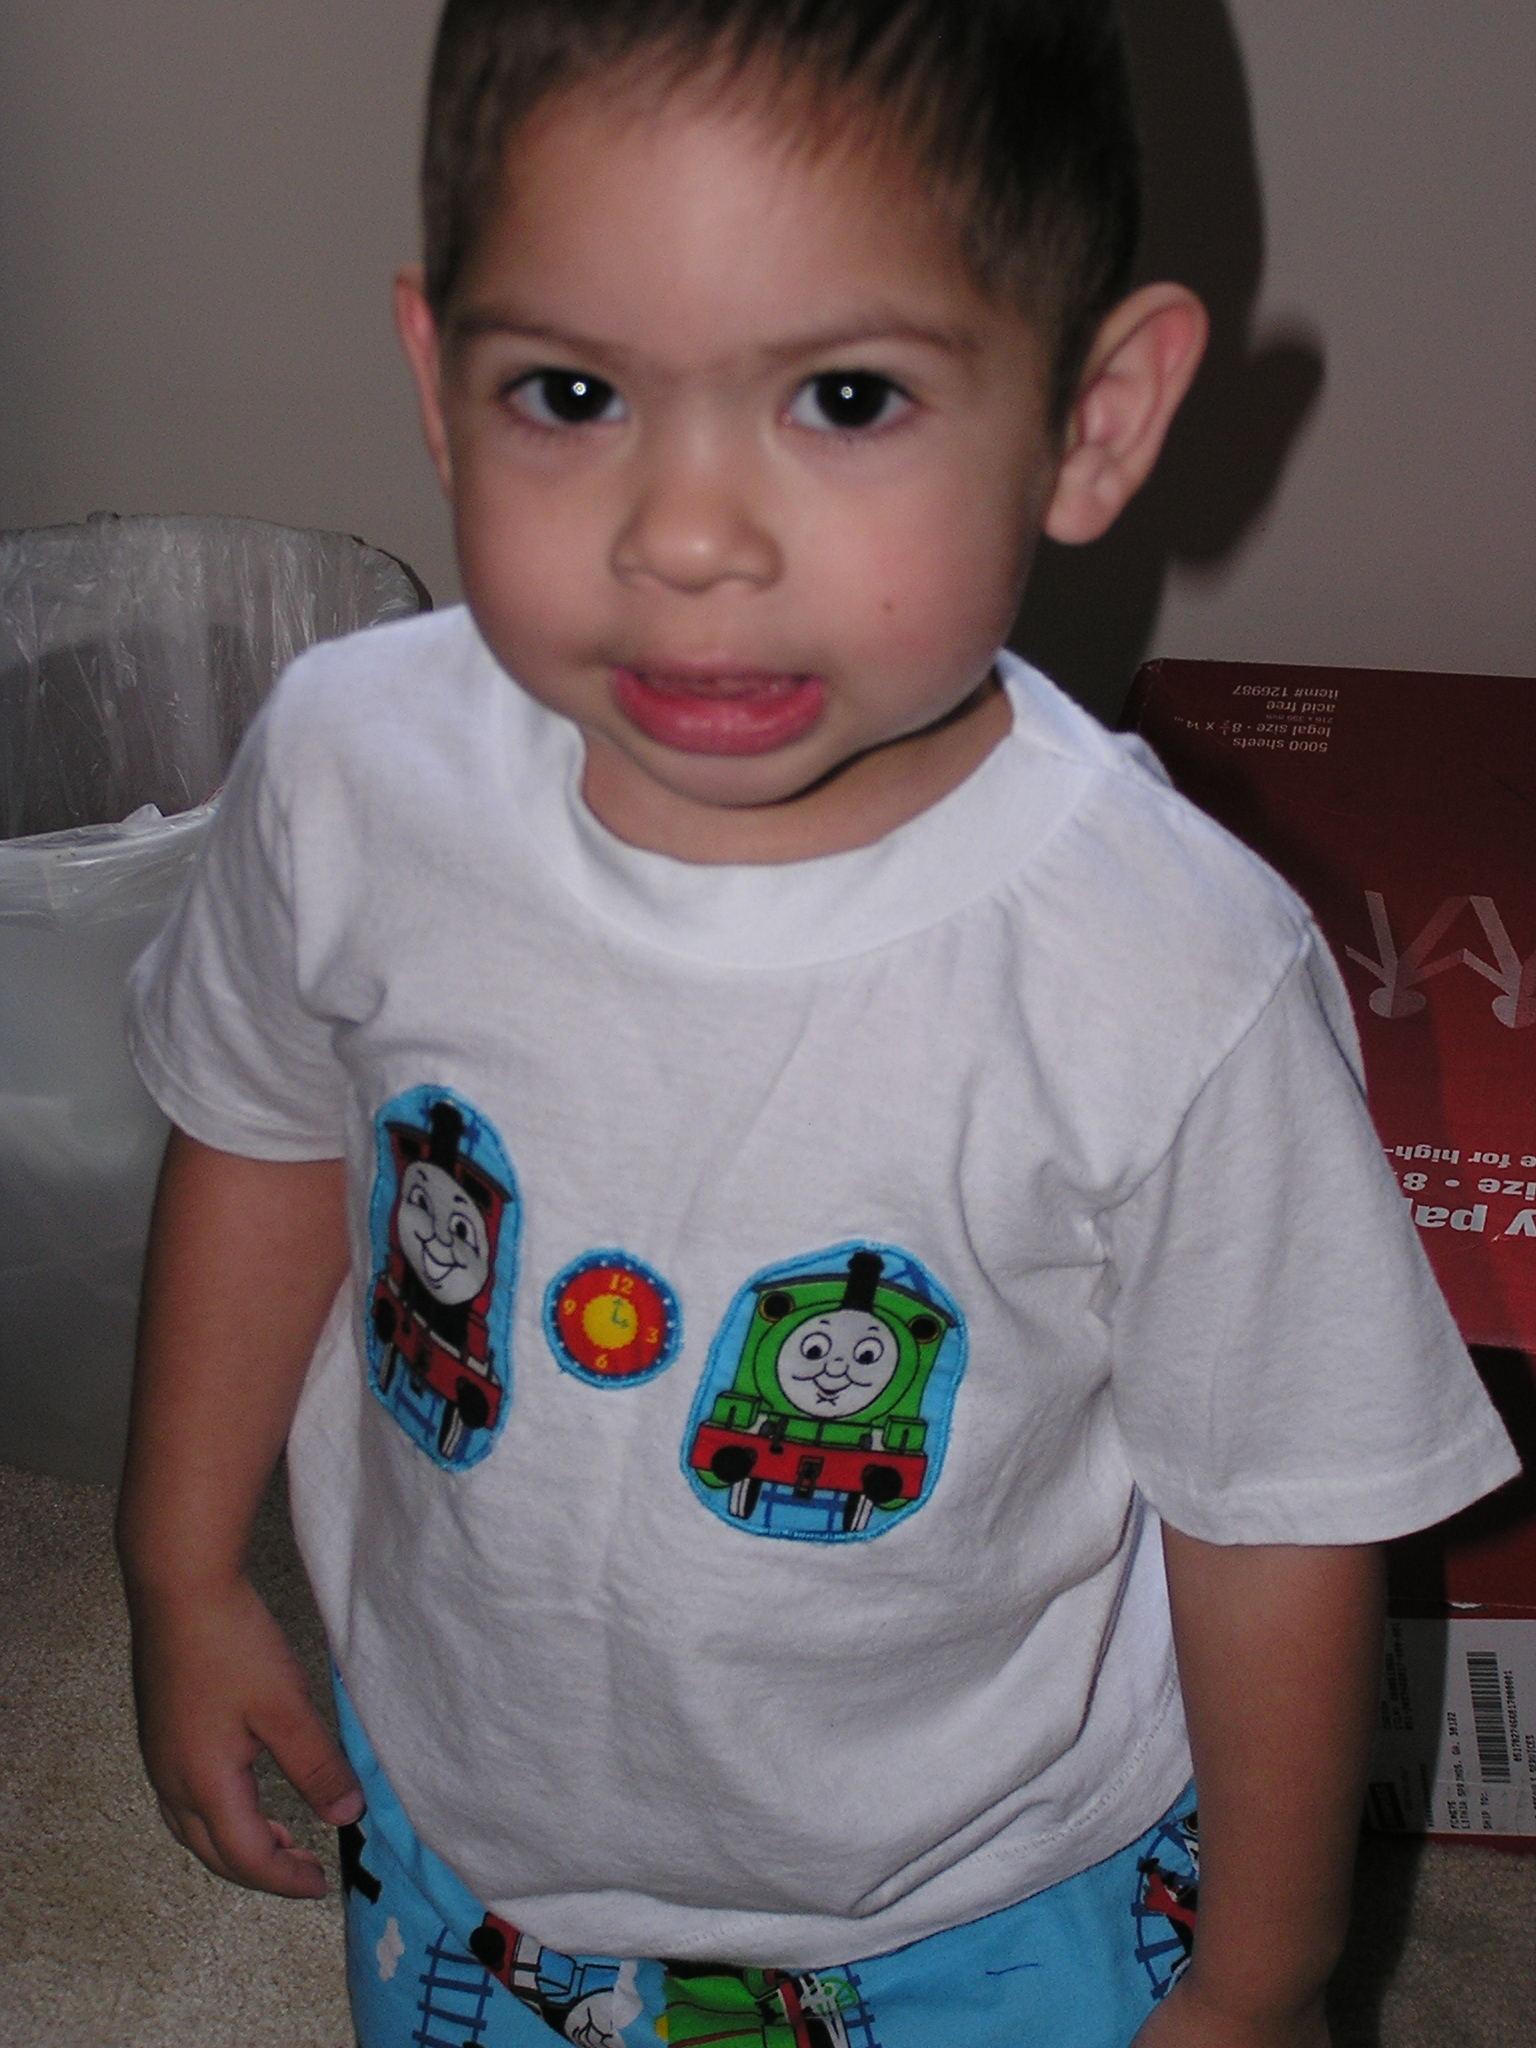 My lovemuffin in his Thomas Shirt